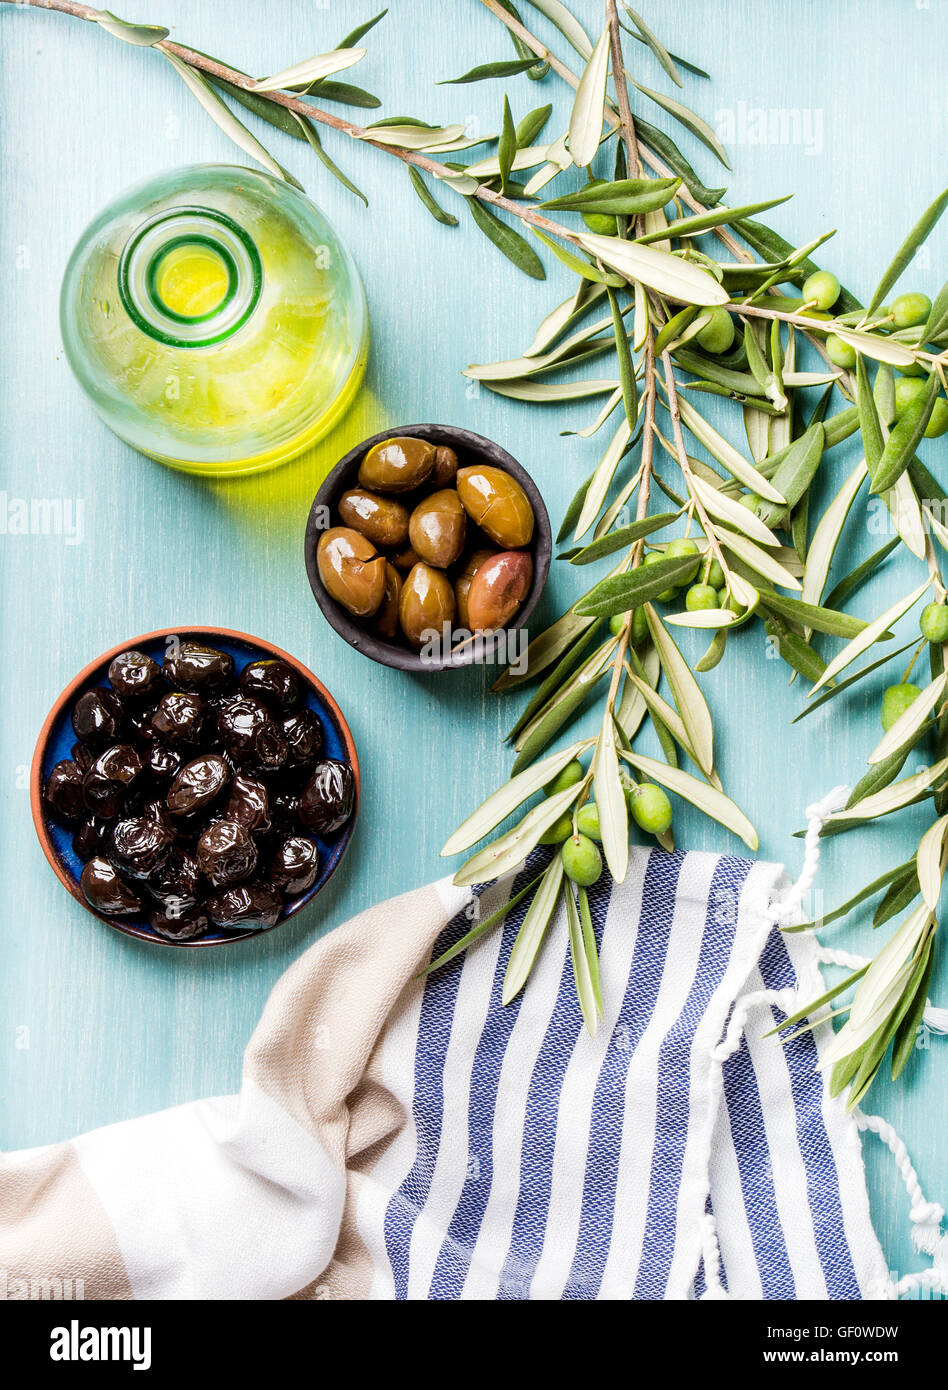 Two bowls with pickled green and black olives, olive tree sprigs, fresh homemade oil over blue Turquoise background - Stock Image